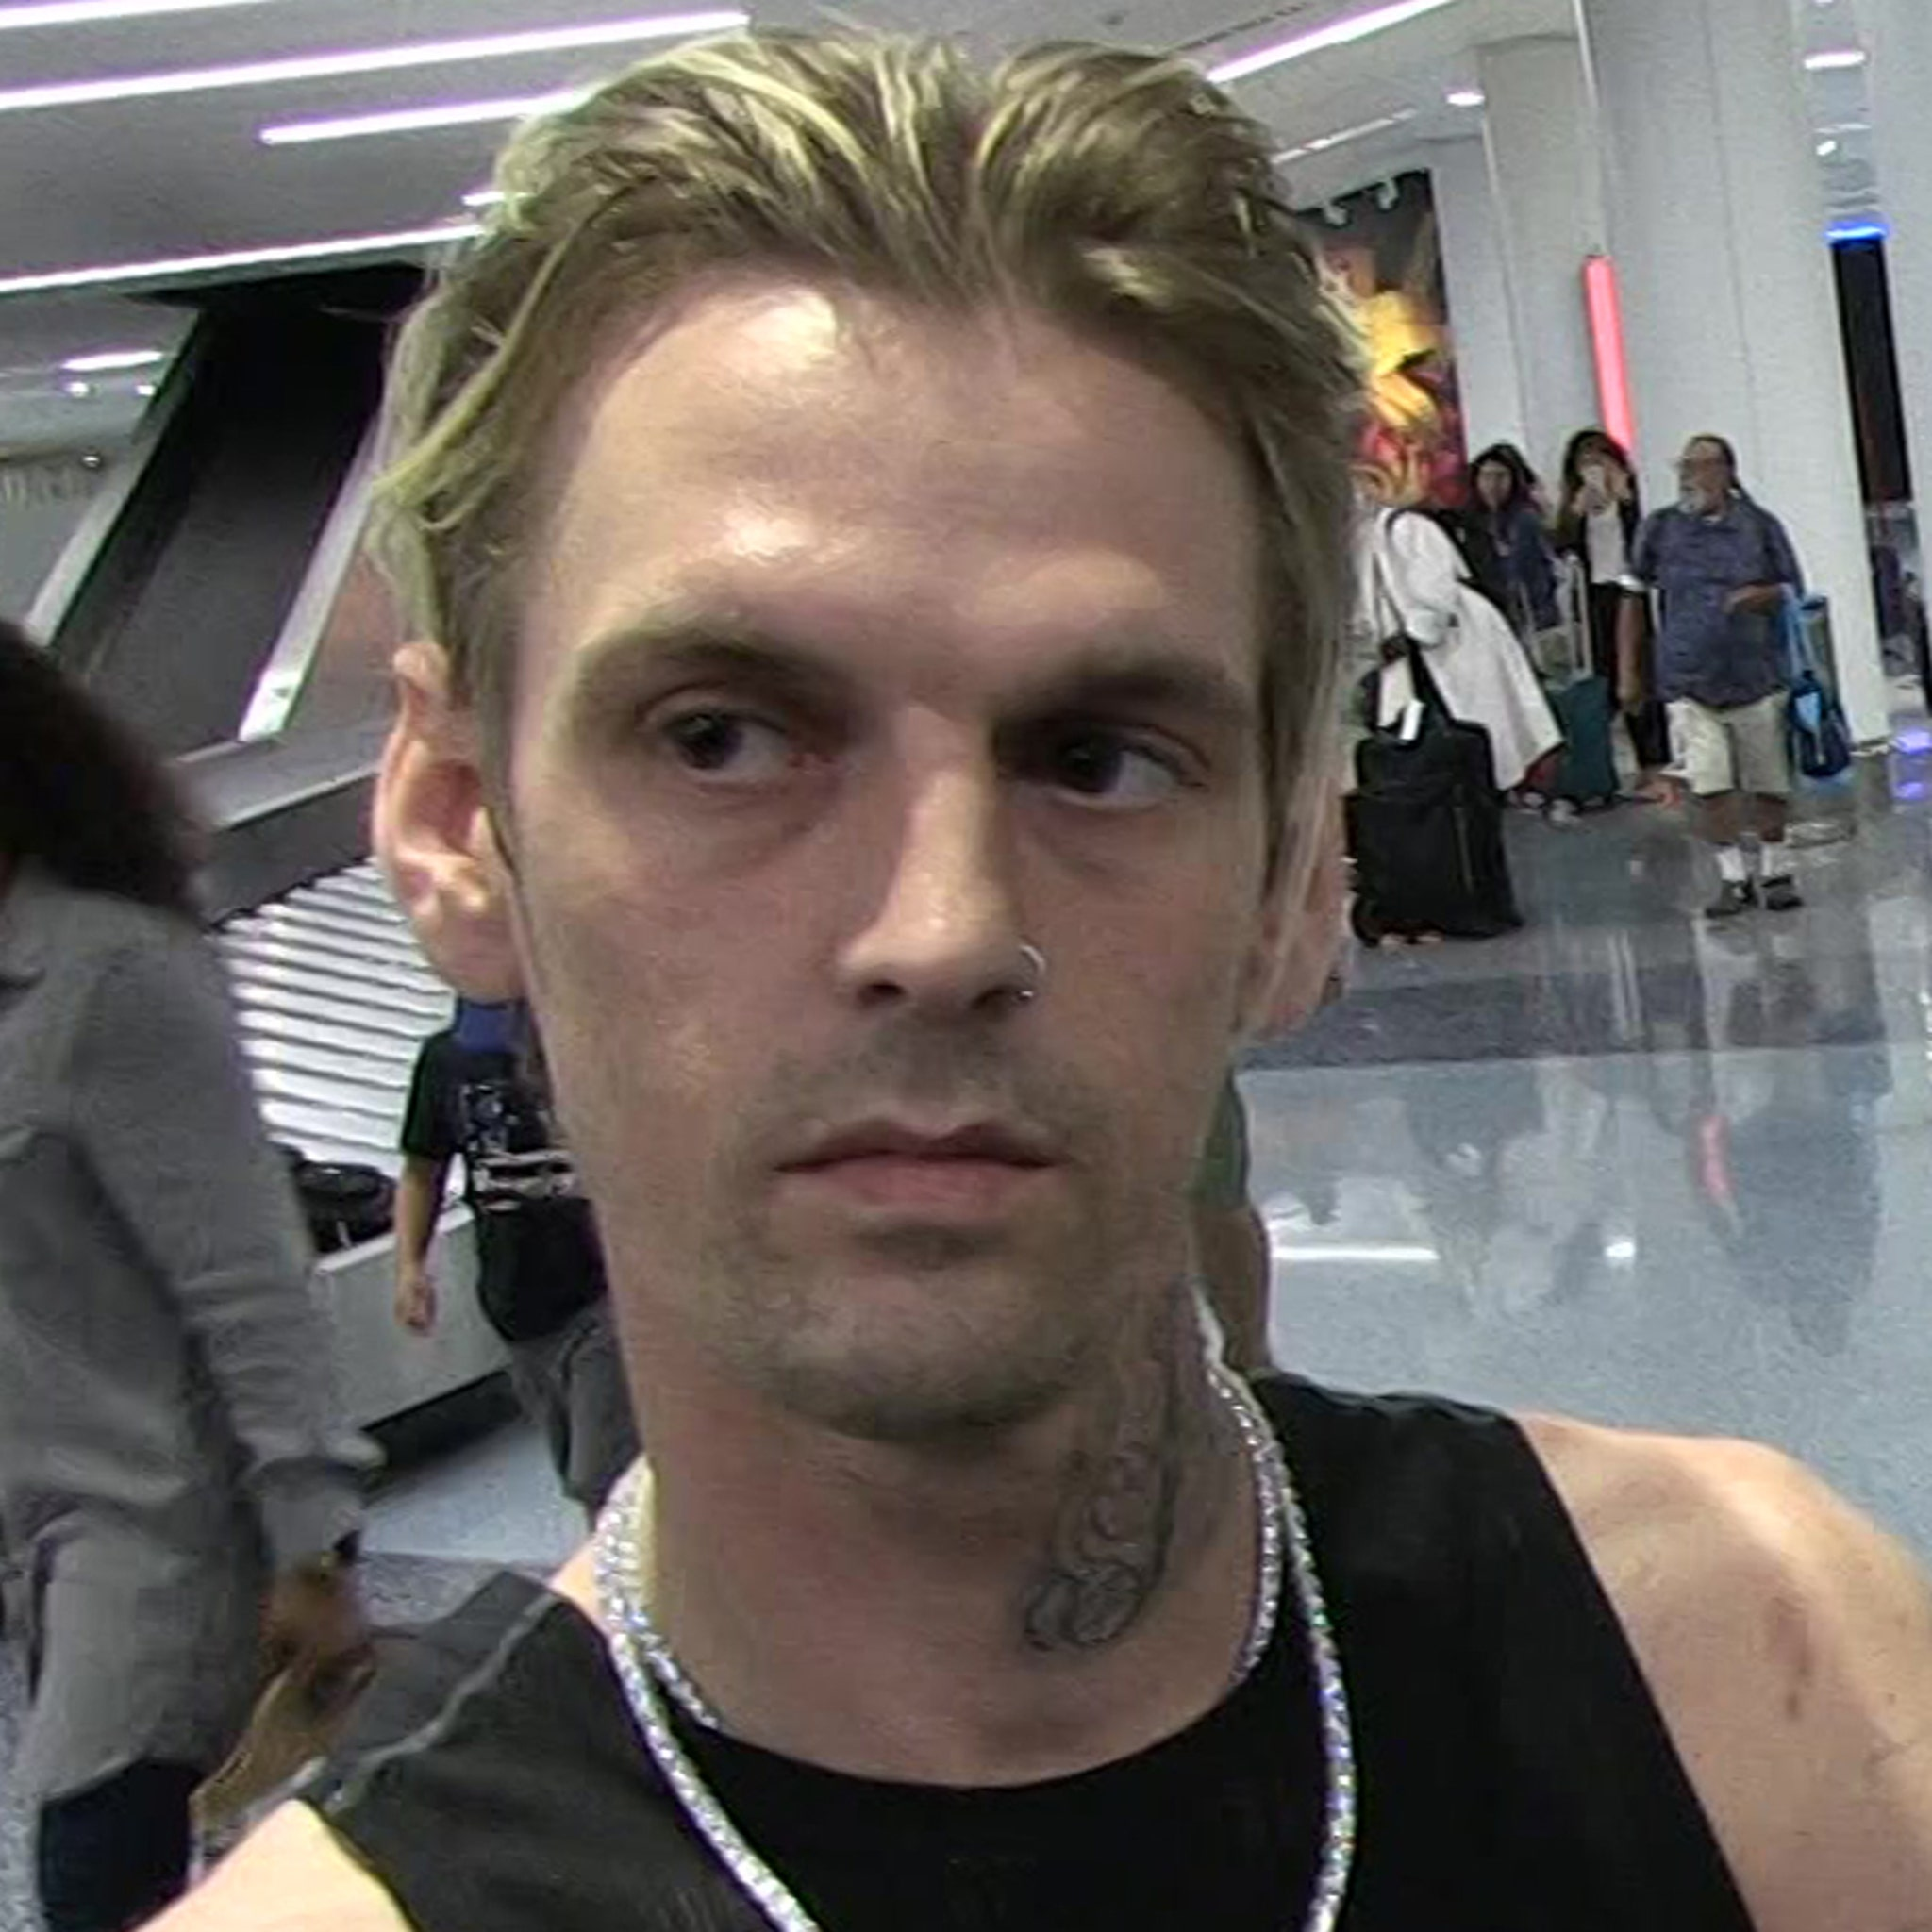 Aaron Carter Goes Nuts in Court After Judge Orders Him to Surrender Guns